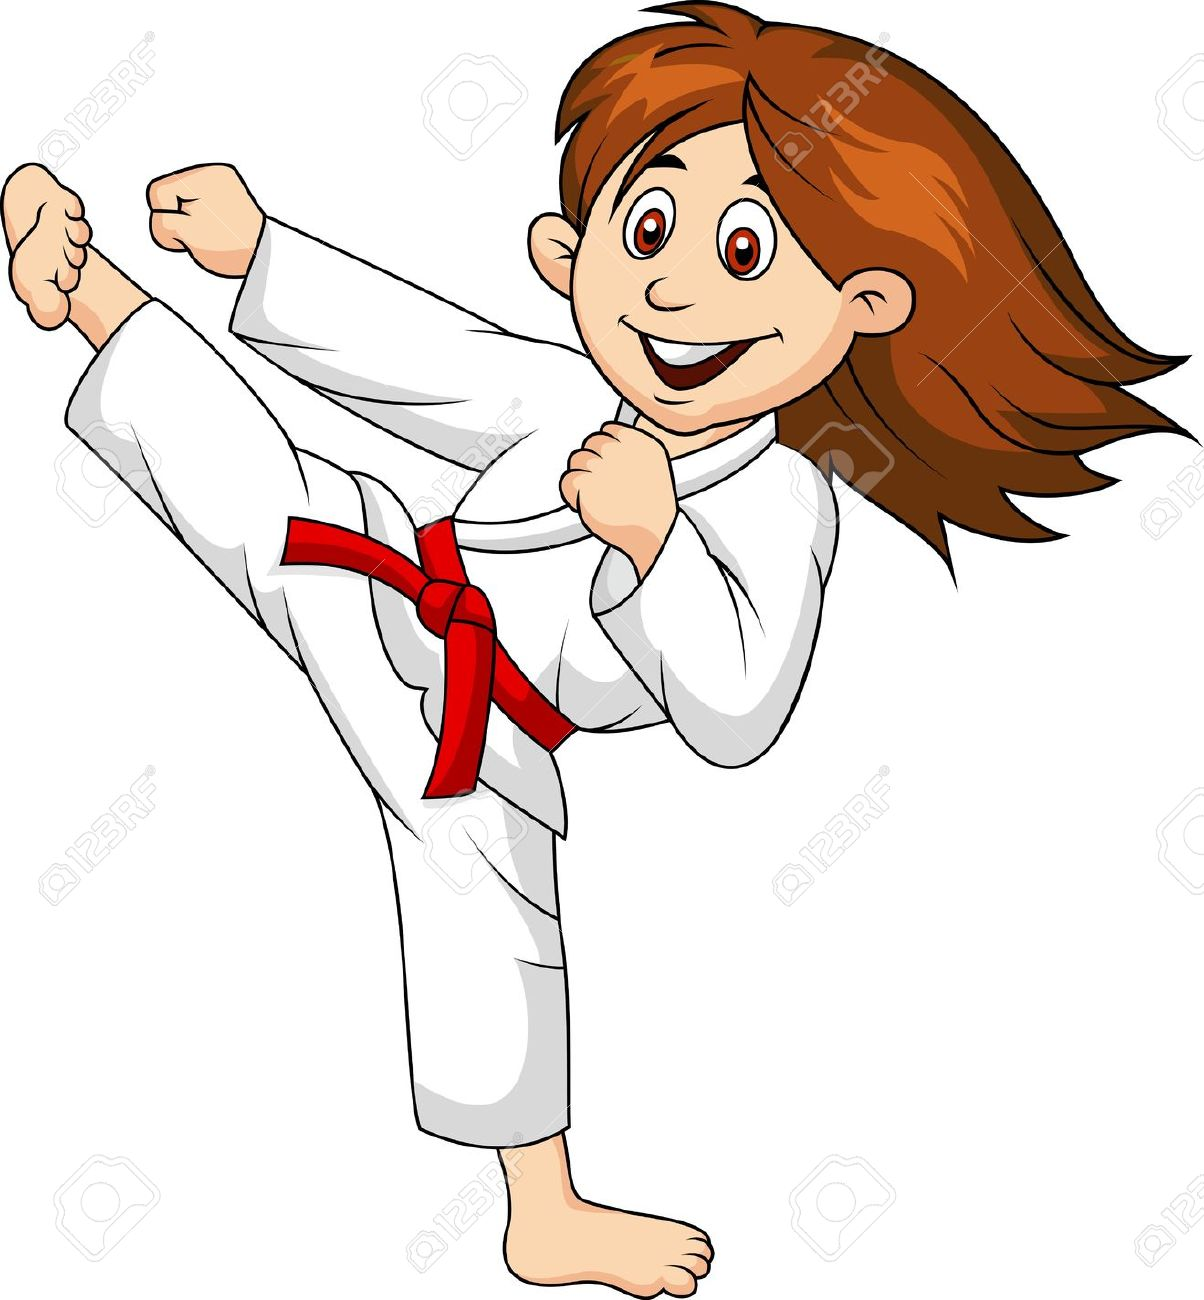 440 Martial Arts free clipart.